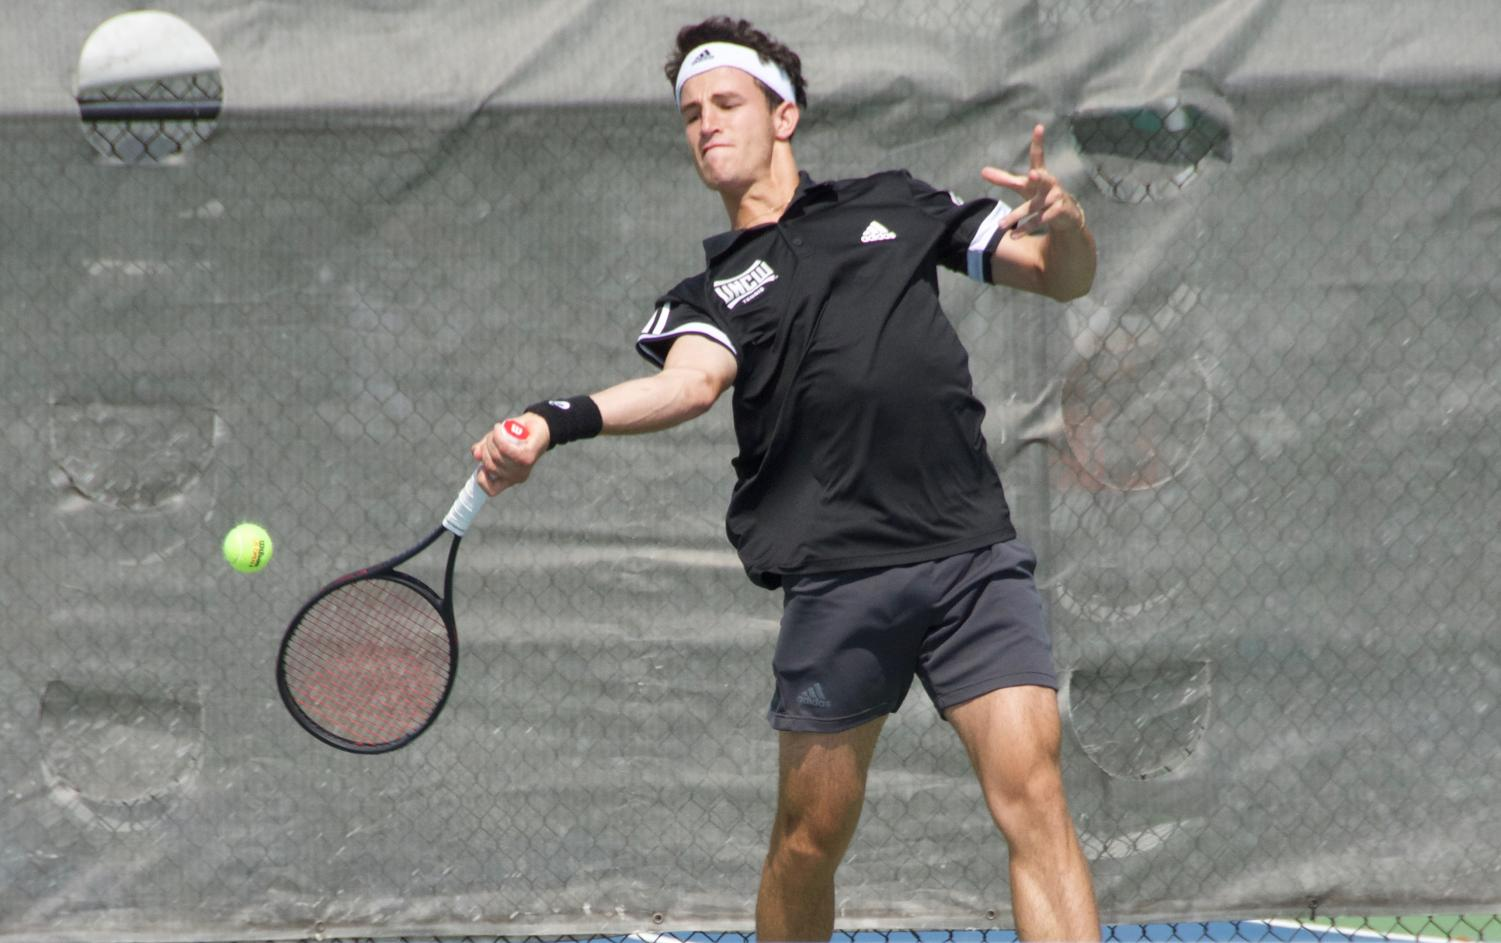 Bruno+Caula+during+UNCW%27s+match+against+South+Carolina+State+on+March+25%2C+2019.+